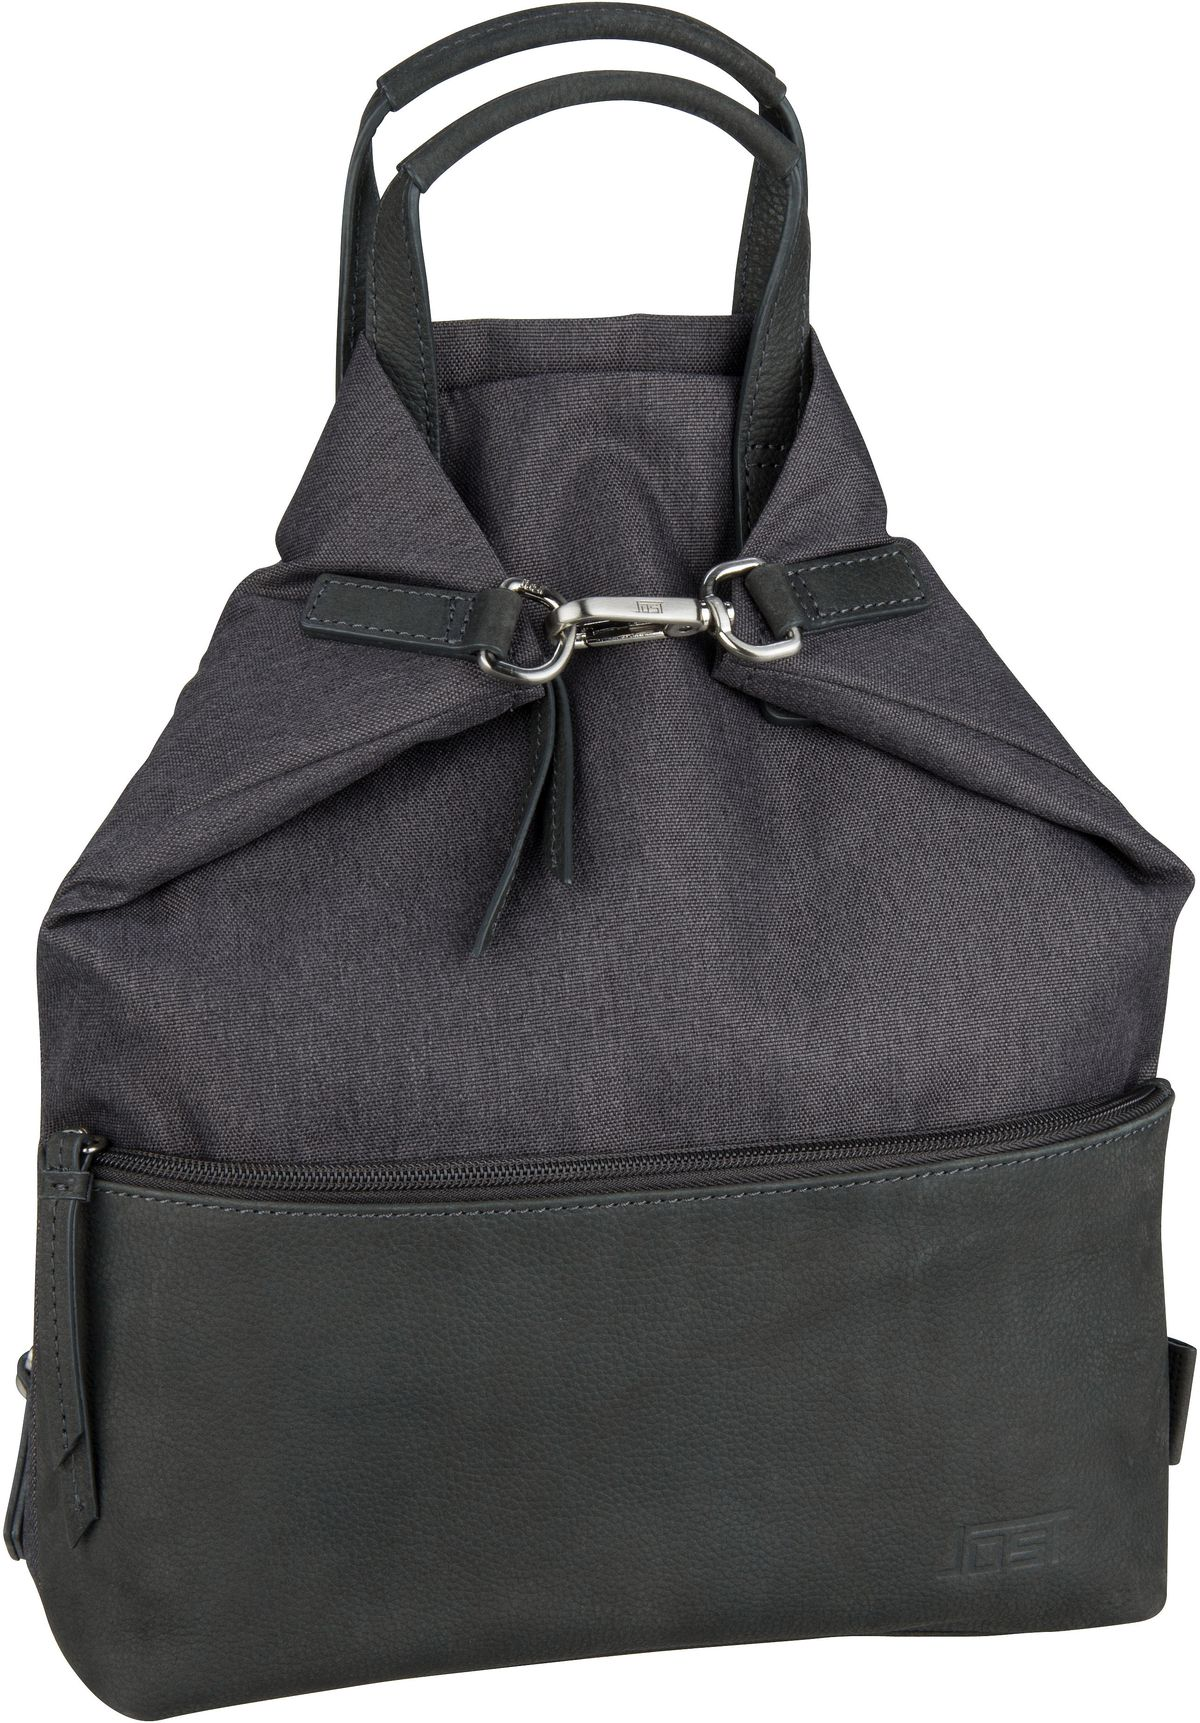 Jost Rucksack / Daypack 2716 X-Change Bag XS Dark Grey